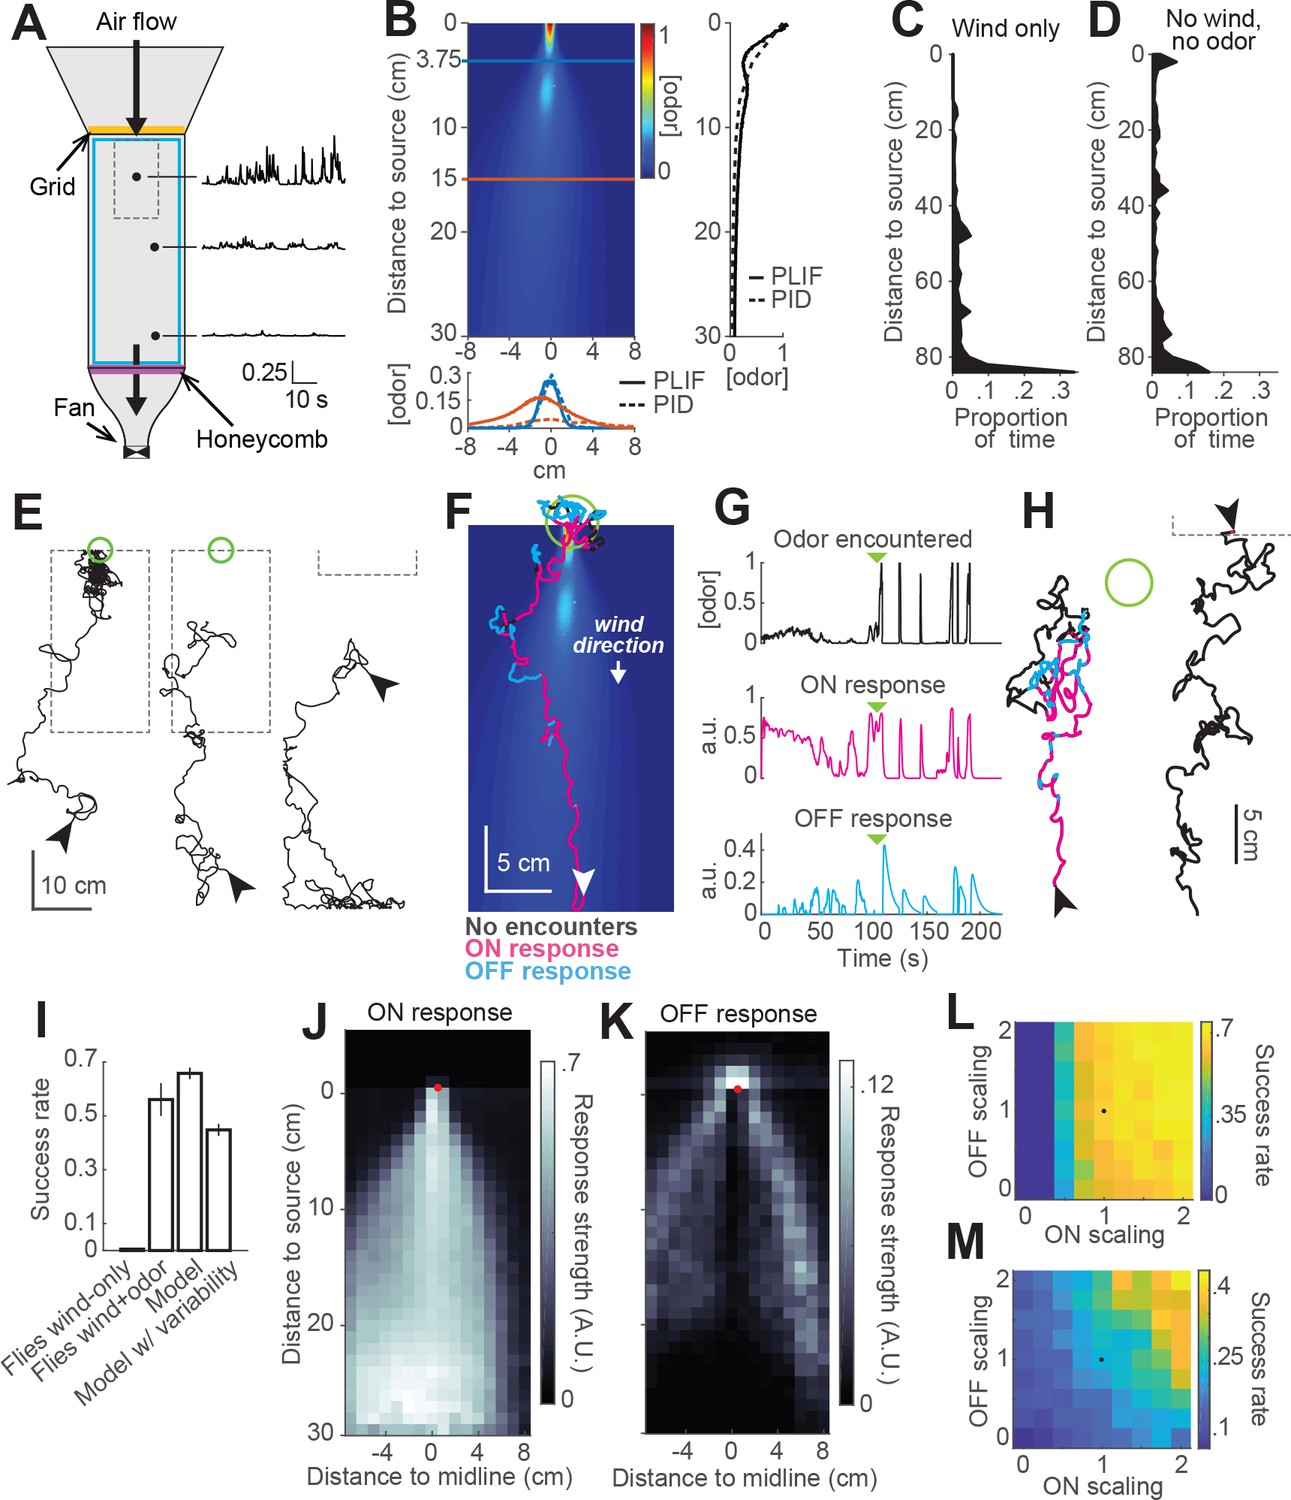 Elementary Sensory Motor Transformations Underlying Olfactory Electrical Block Diagram Definition Moreover Marine Real And Virtual Behavior Of Flies In A Turbulent Odor Environment Schematic